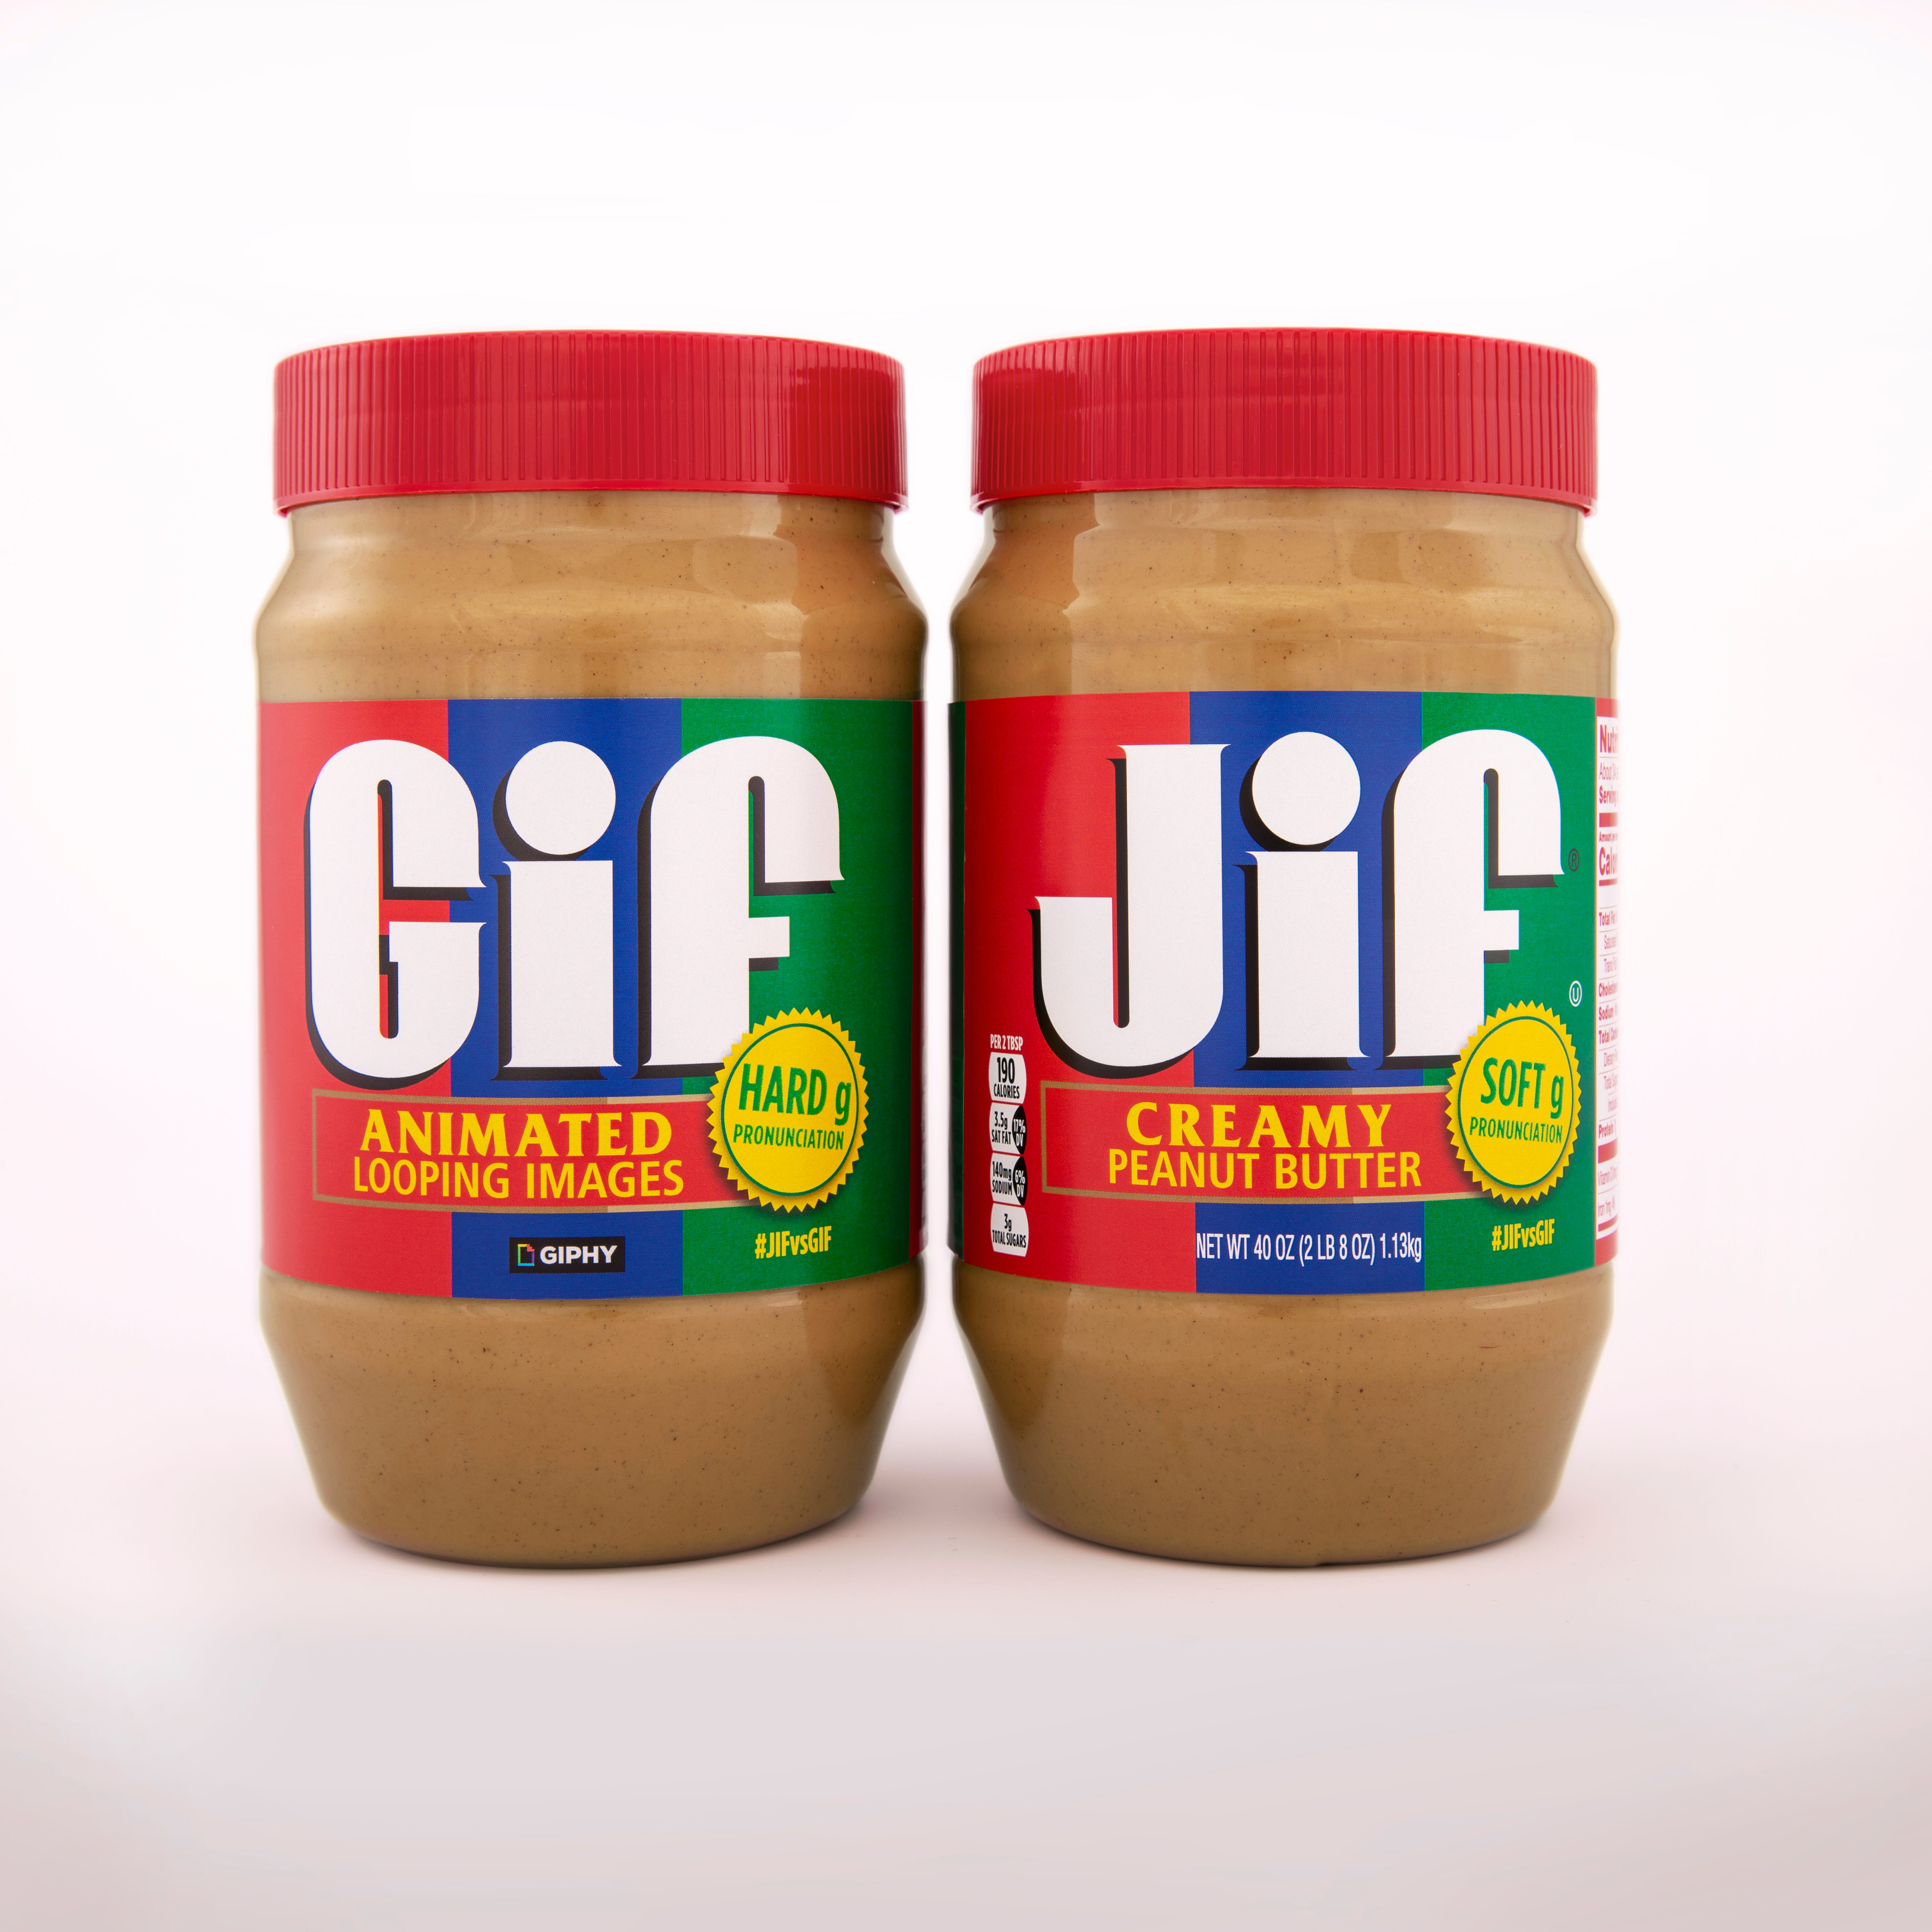 Gif or Jif: How do you pronounce it? The definitive answer